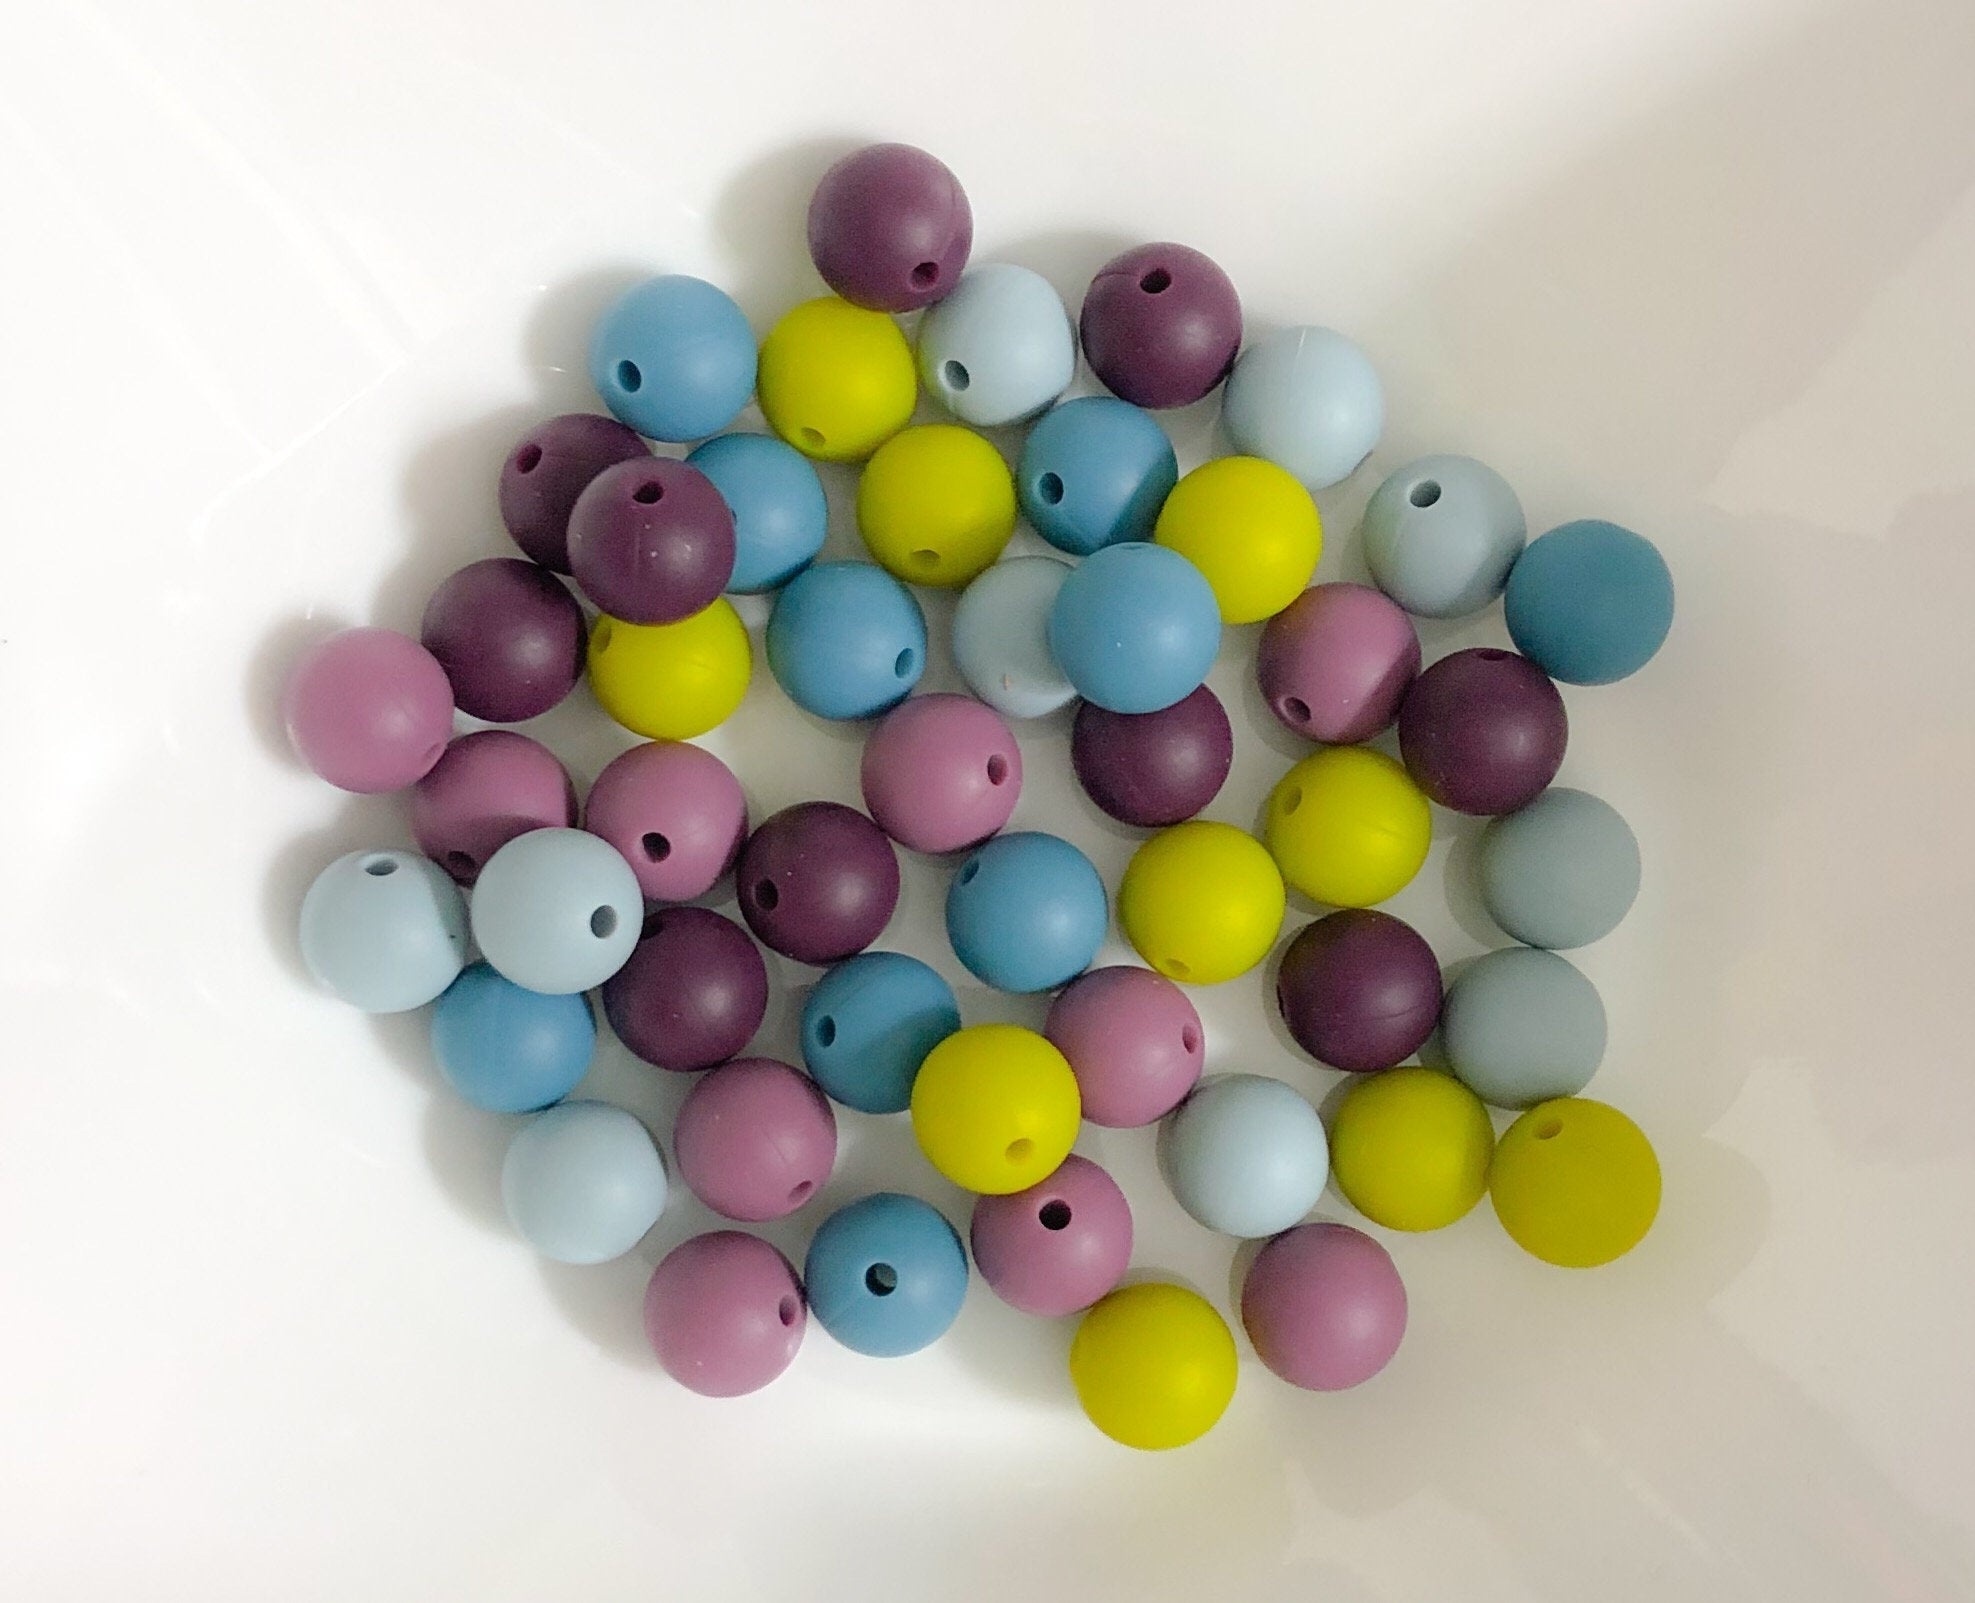 50 Bulk Silicone Teething Beads - Blackberry Macaroon - Violet, Nectar, Bluebird, Wedgewood, Moss - Bulk Silicone Beads Wholesale